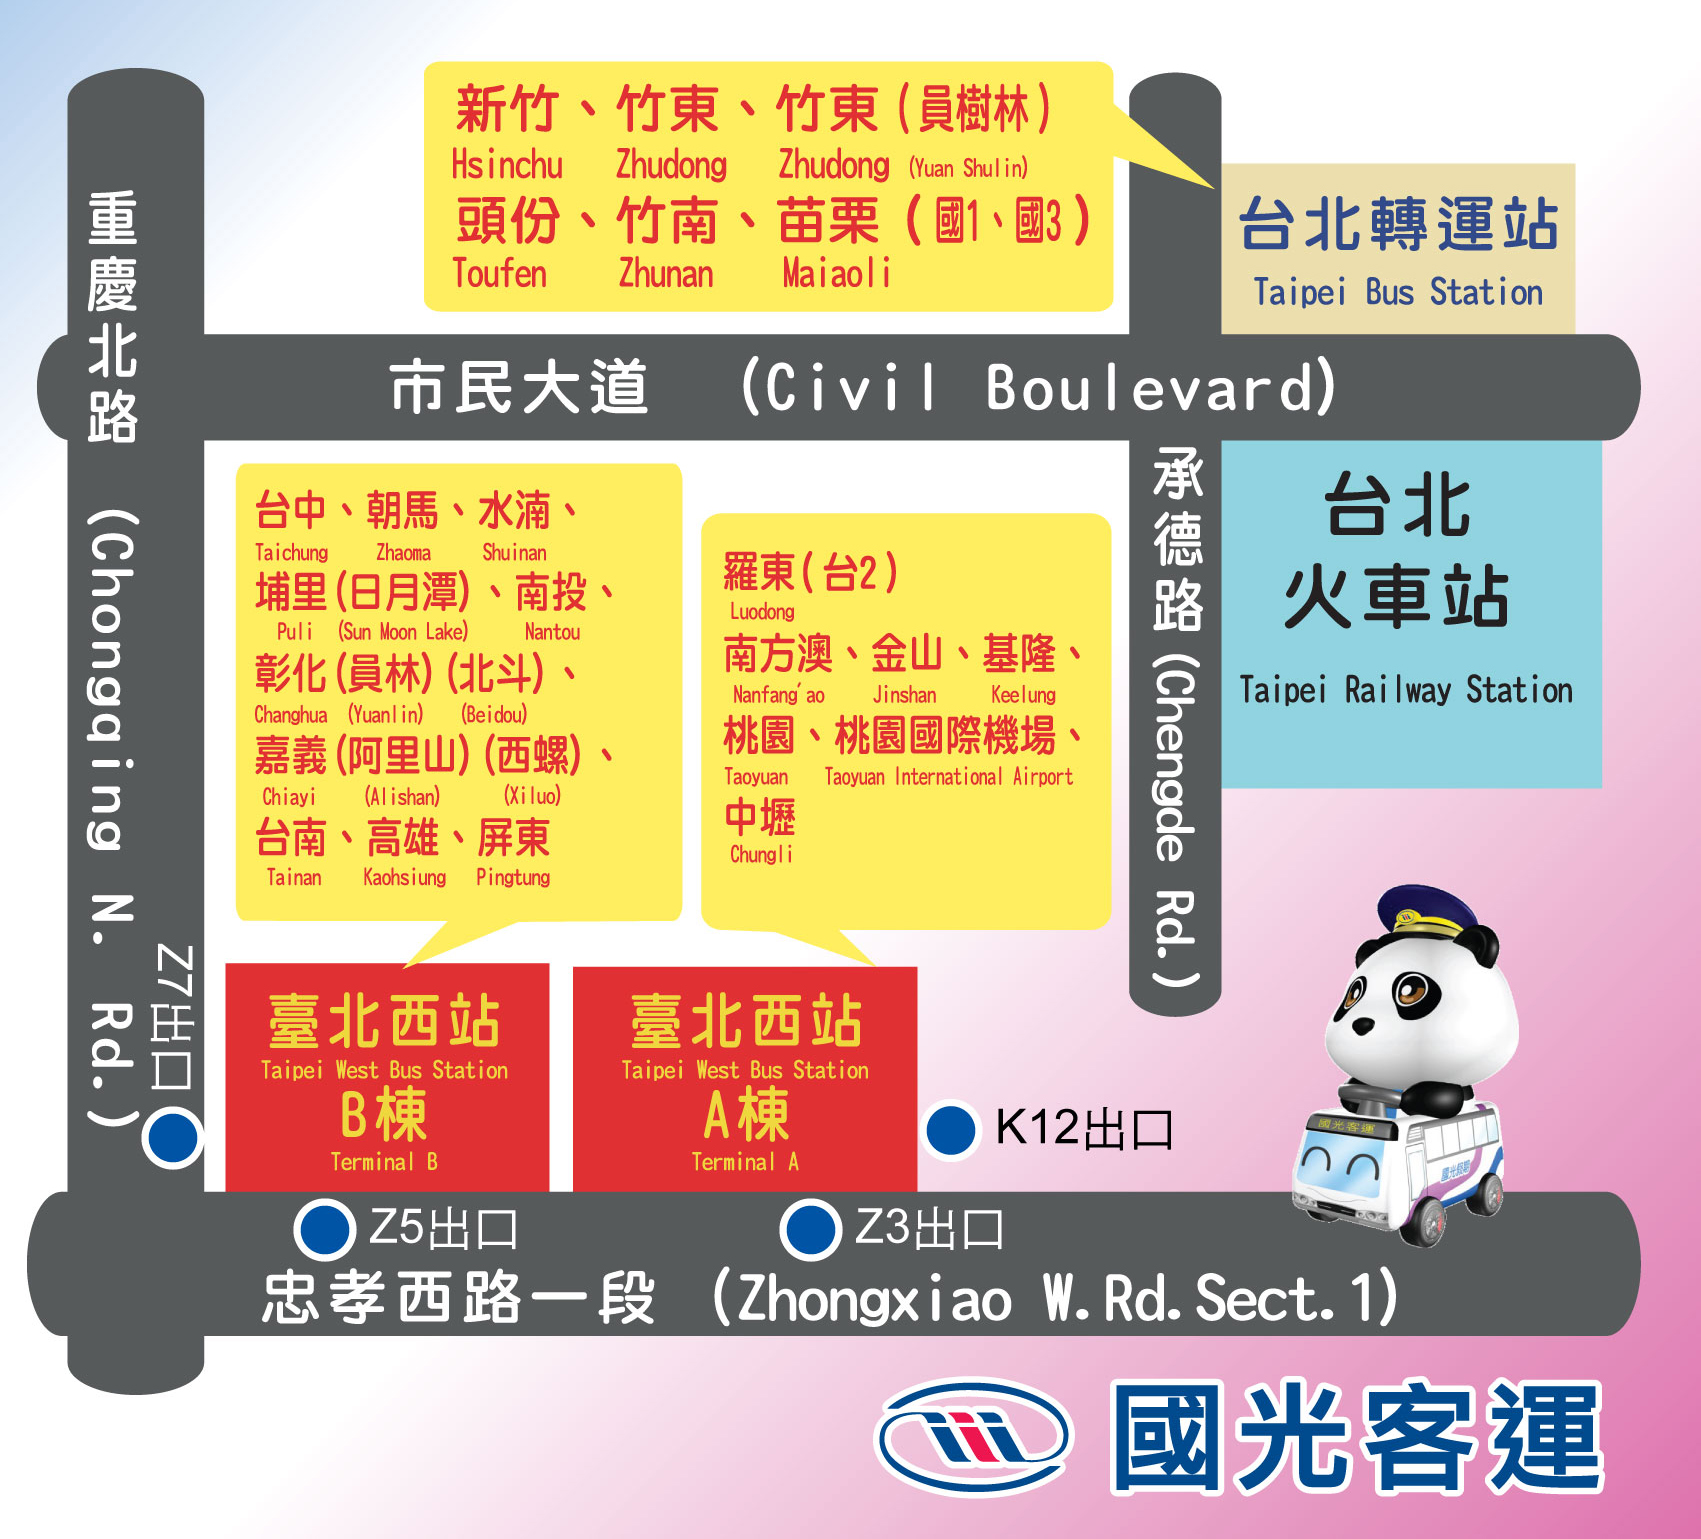 [TAIPEI 台北] : How to go Taoyuan Airport from Taipei Main Station 如何从台北车站到桃园机场